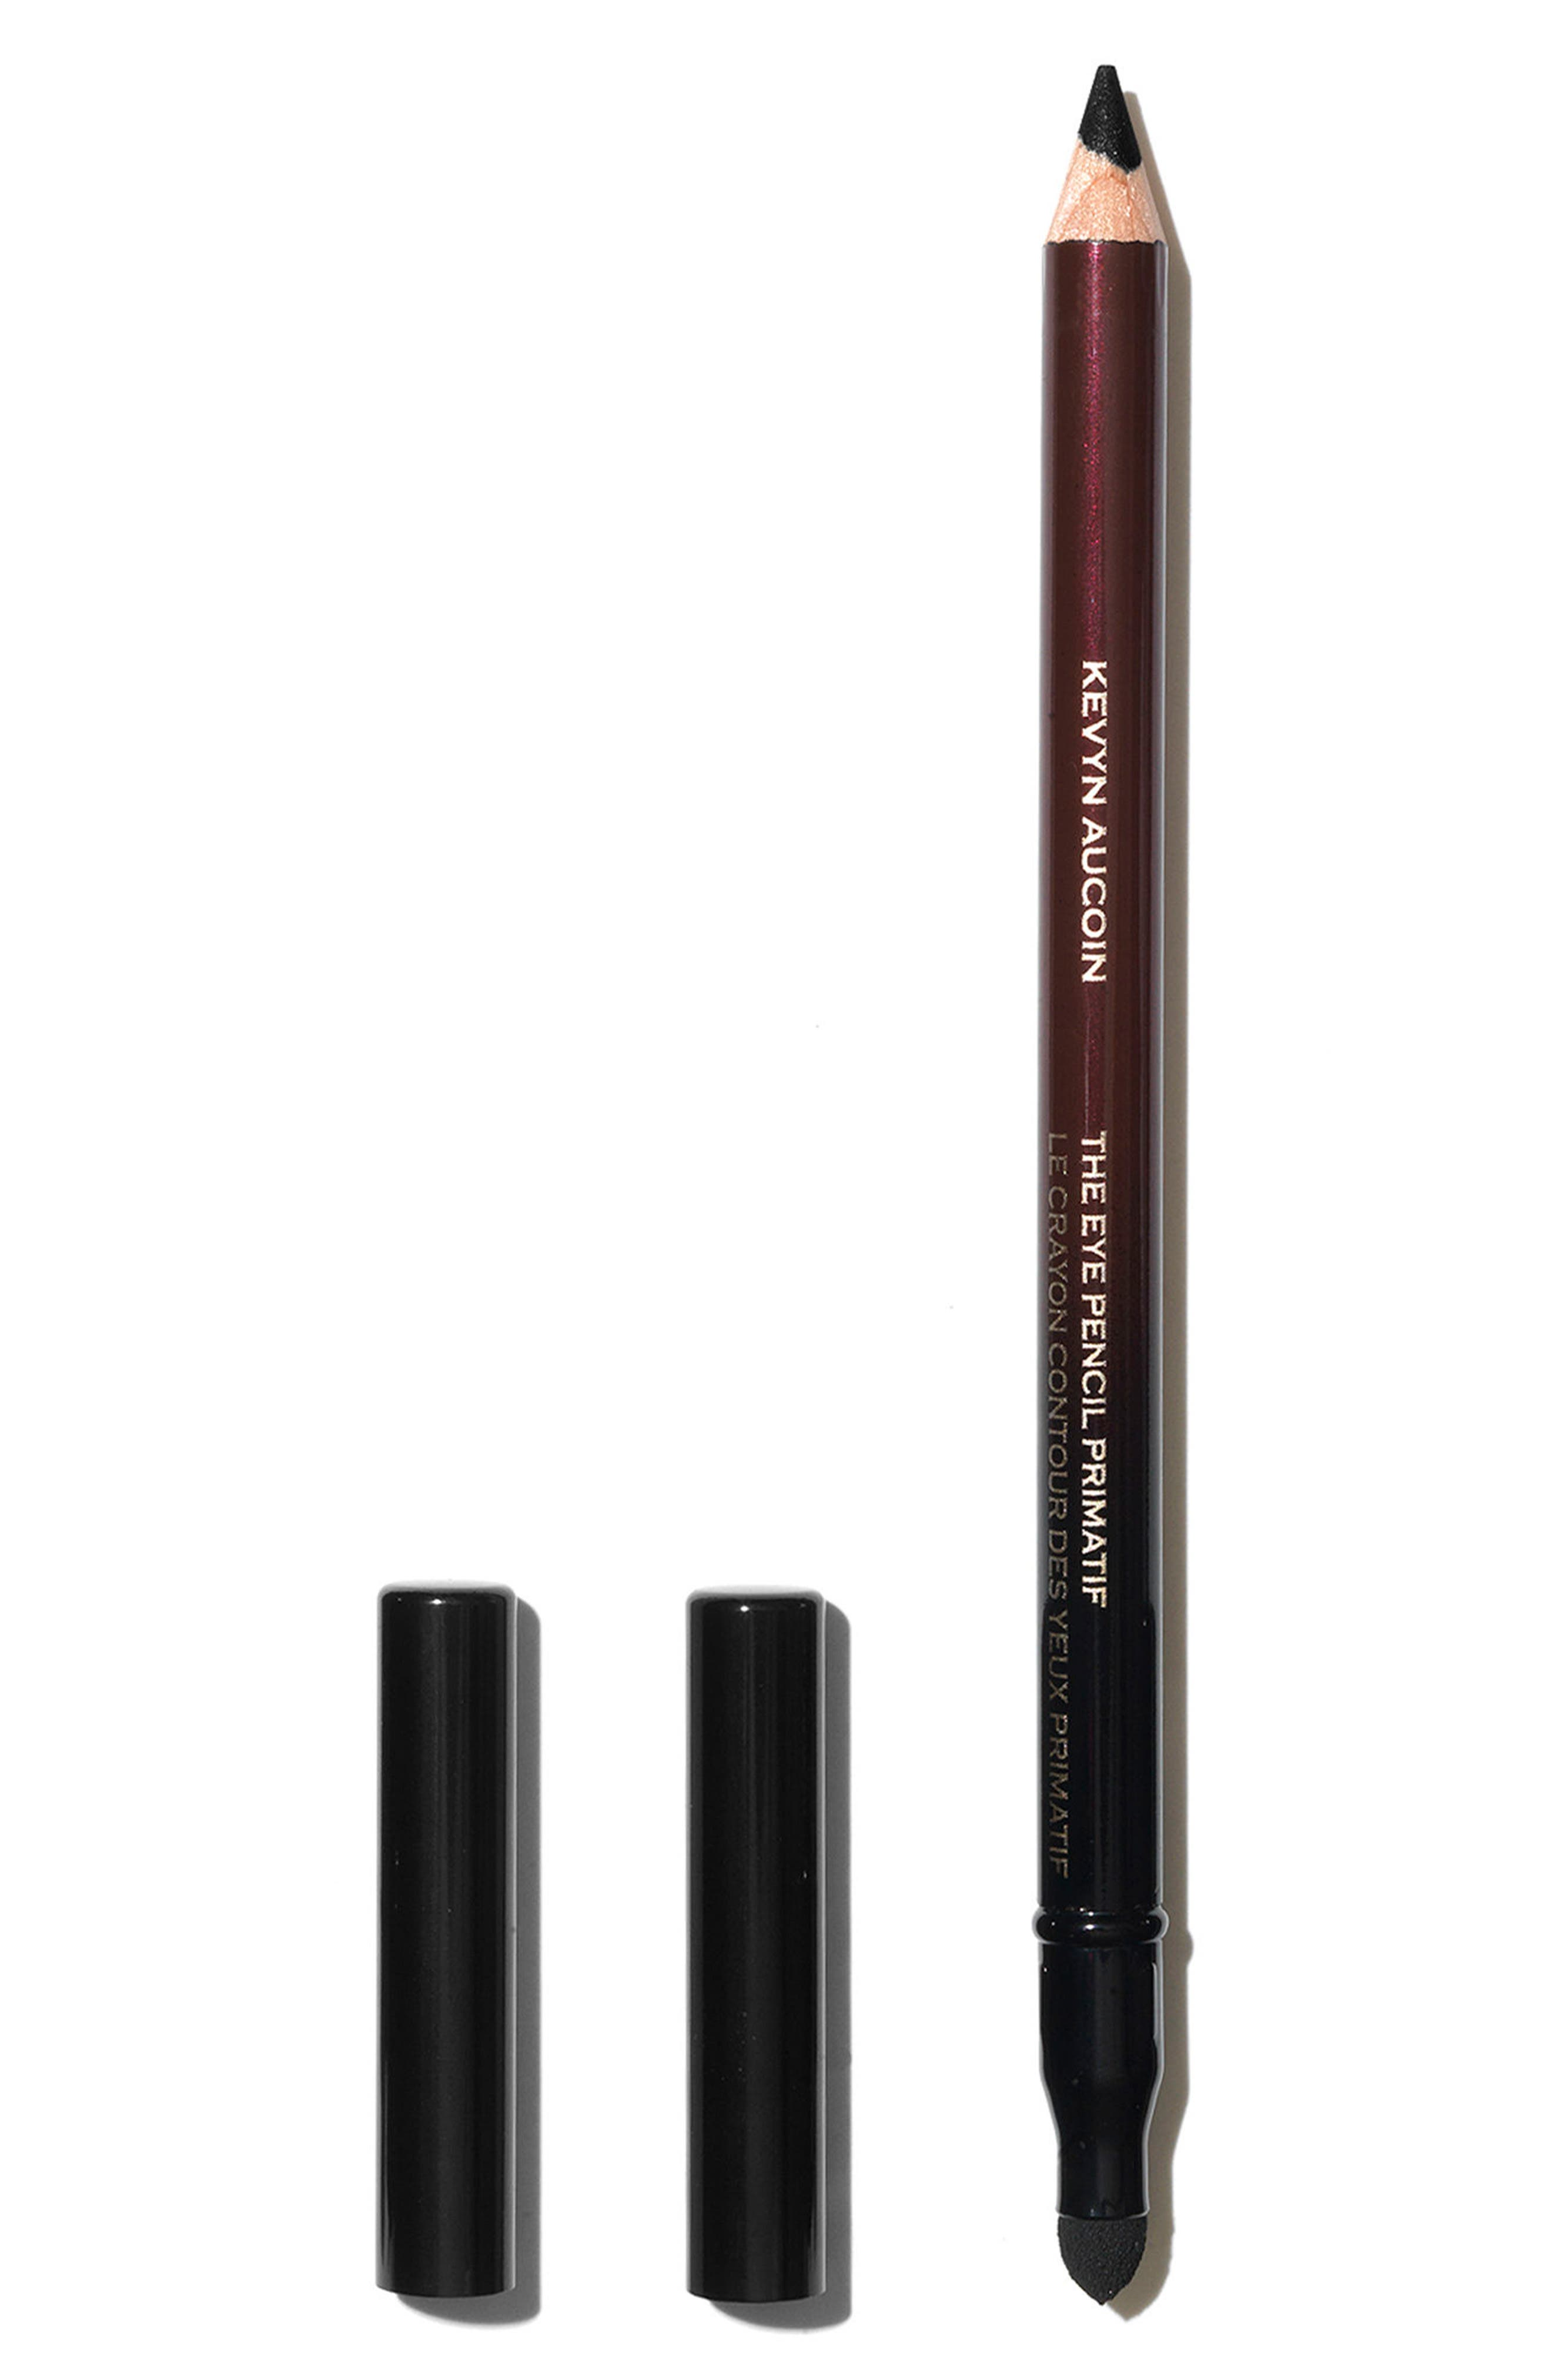 SPACE.NK.apothecary Kevyn Aucoin Beauty The Eye Pencil Primatif Pencil Eyeliner,                         Main,                         color, Basic Black